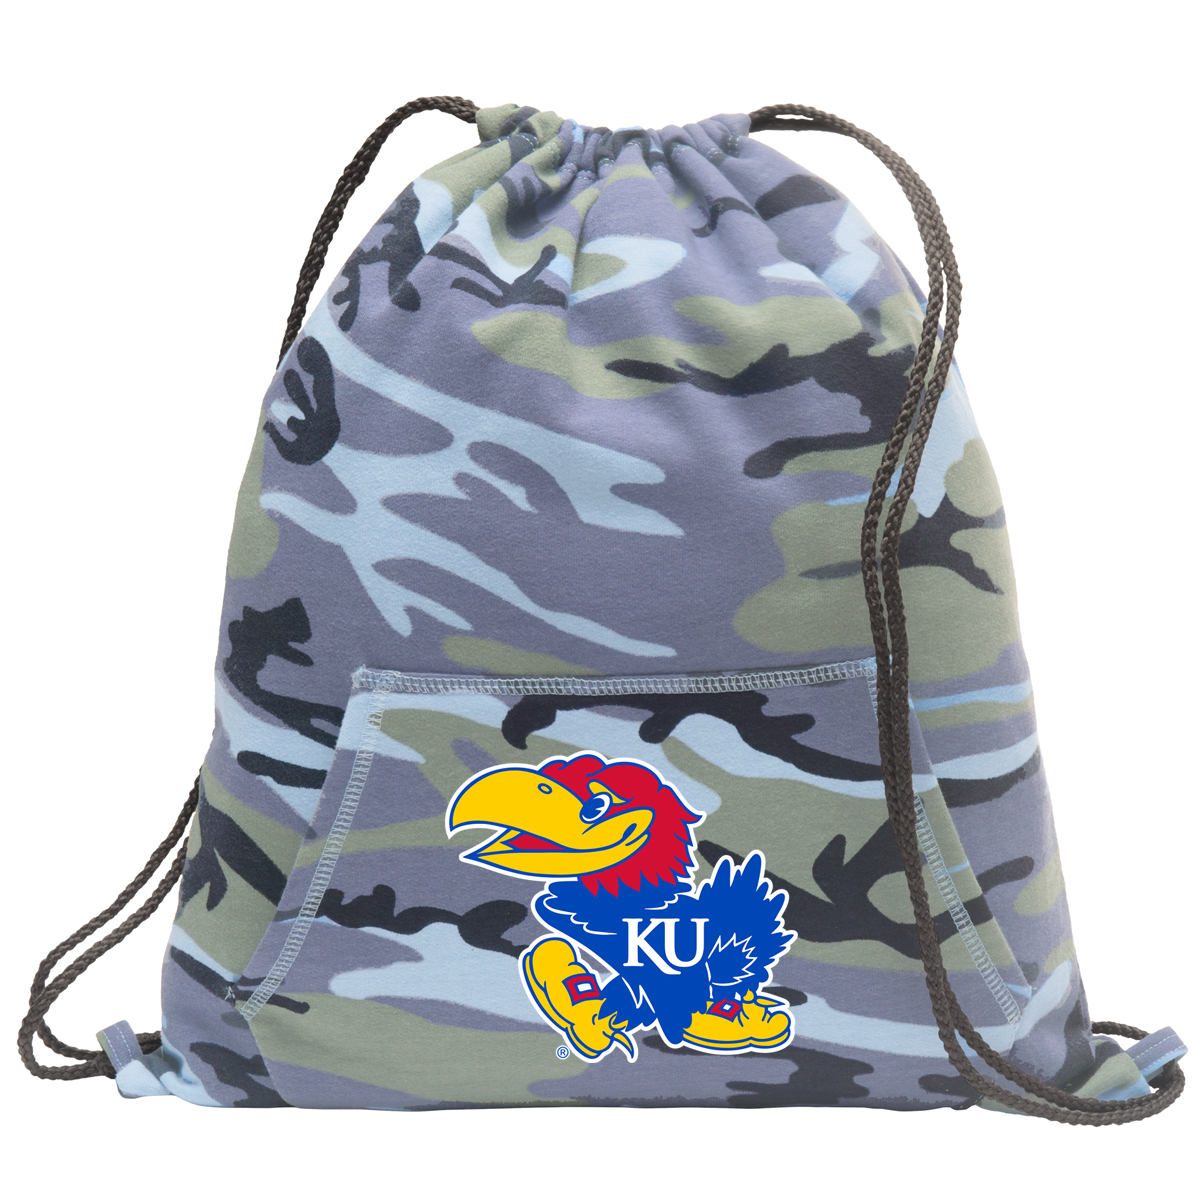 Kansas Jayhawks Drawstring Bag Blue Camo